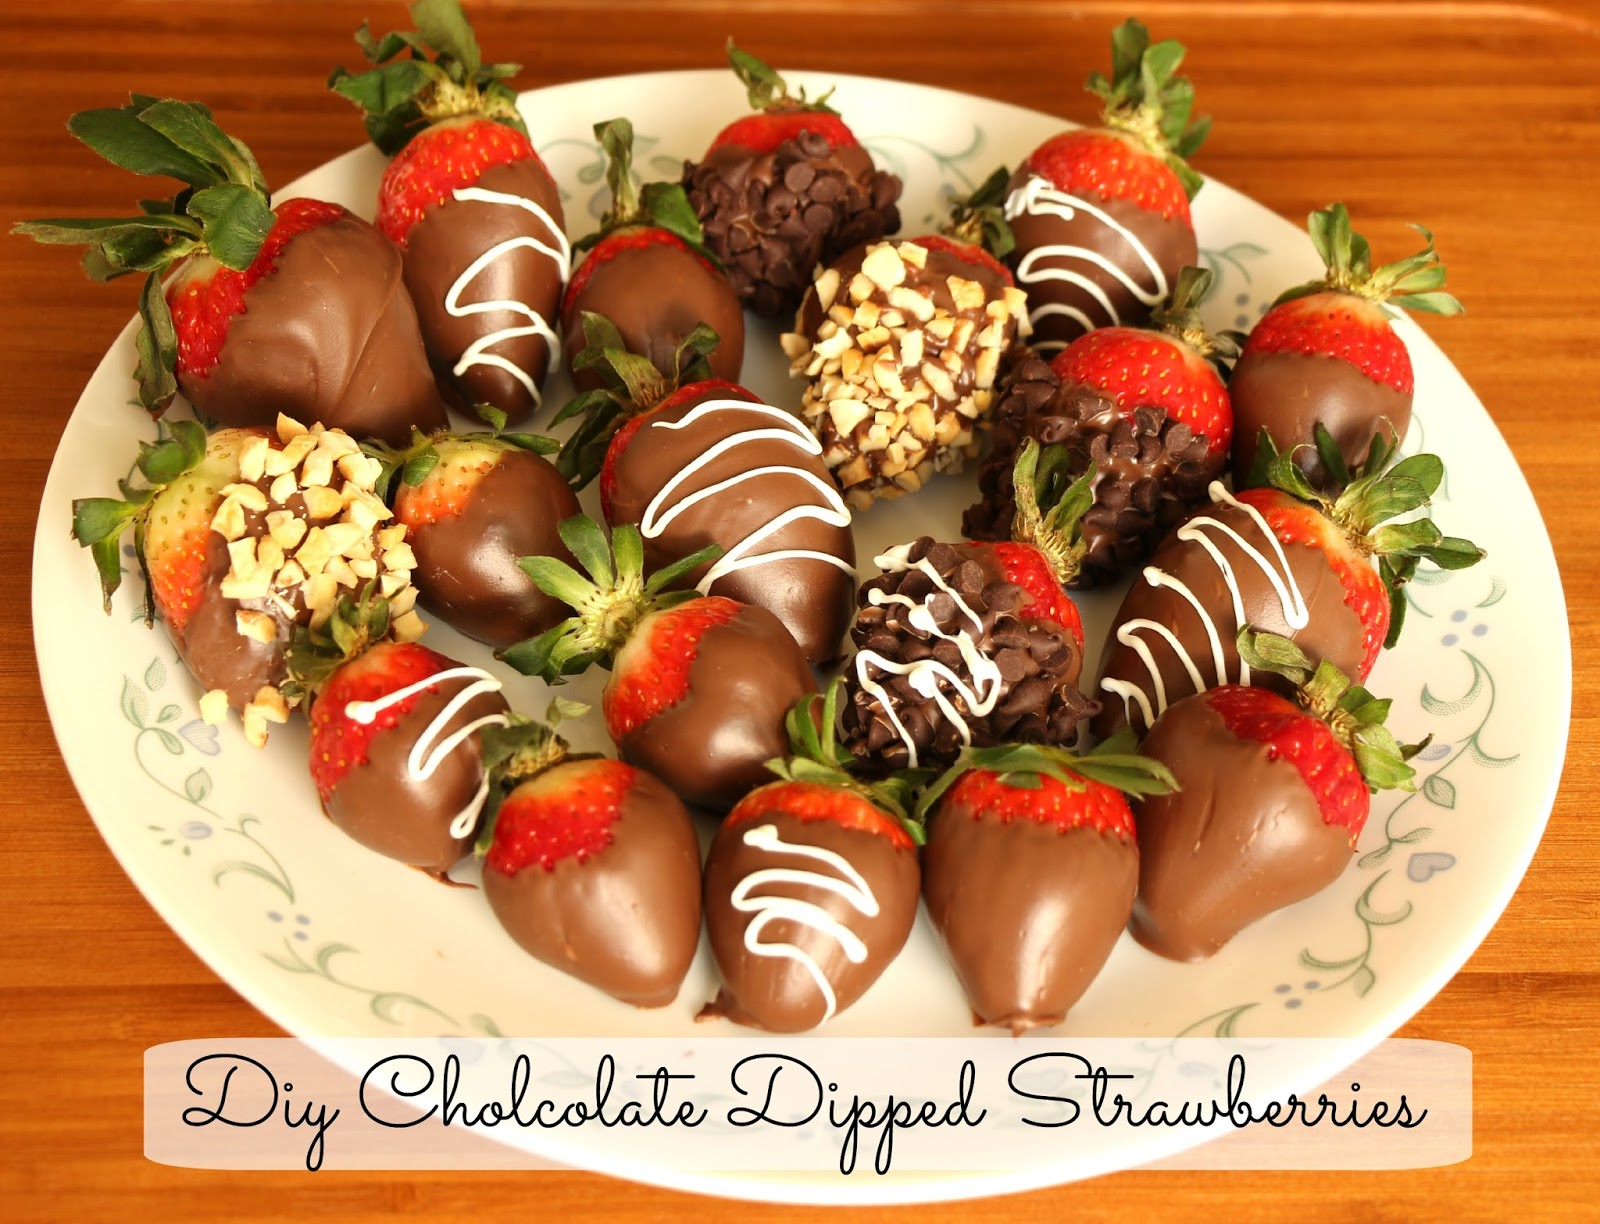 DIY Gourmet Chocolate Dipped Strawberries. Valentine's day Treat. Romantic dessert or Fun food for any occassion.